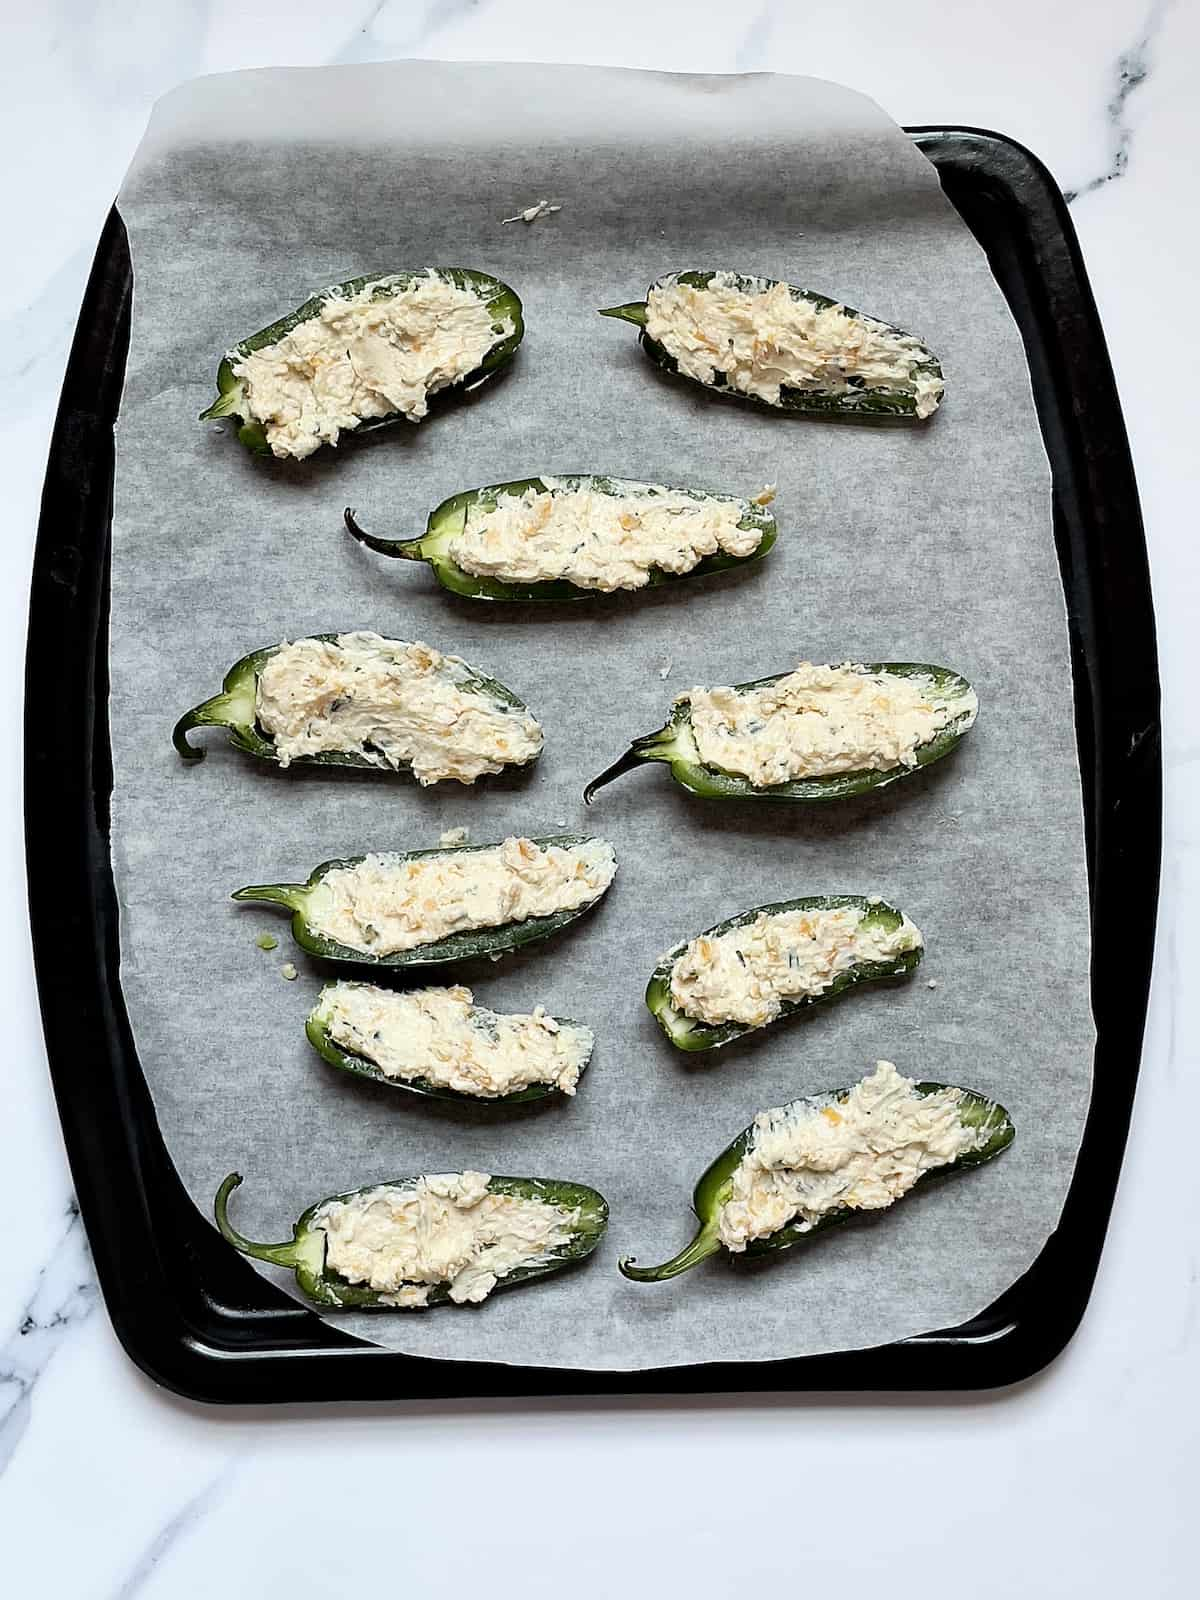 jalapeno peppers stuffed with cream cheese filling